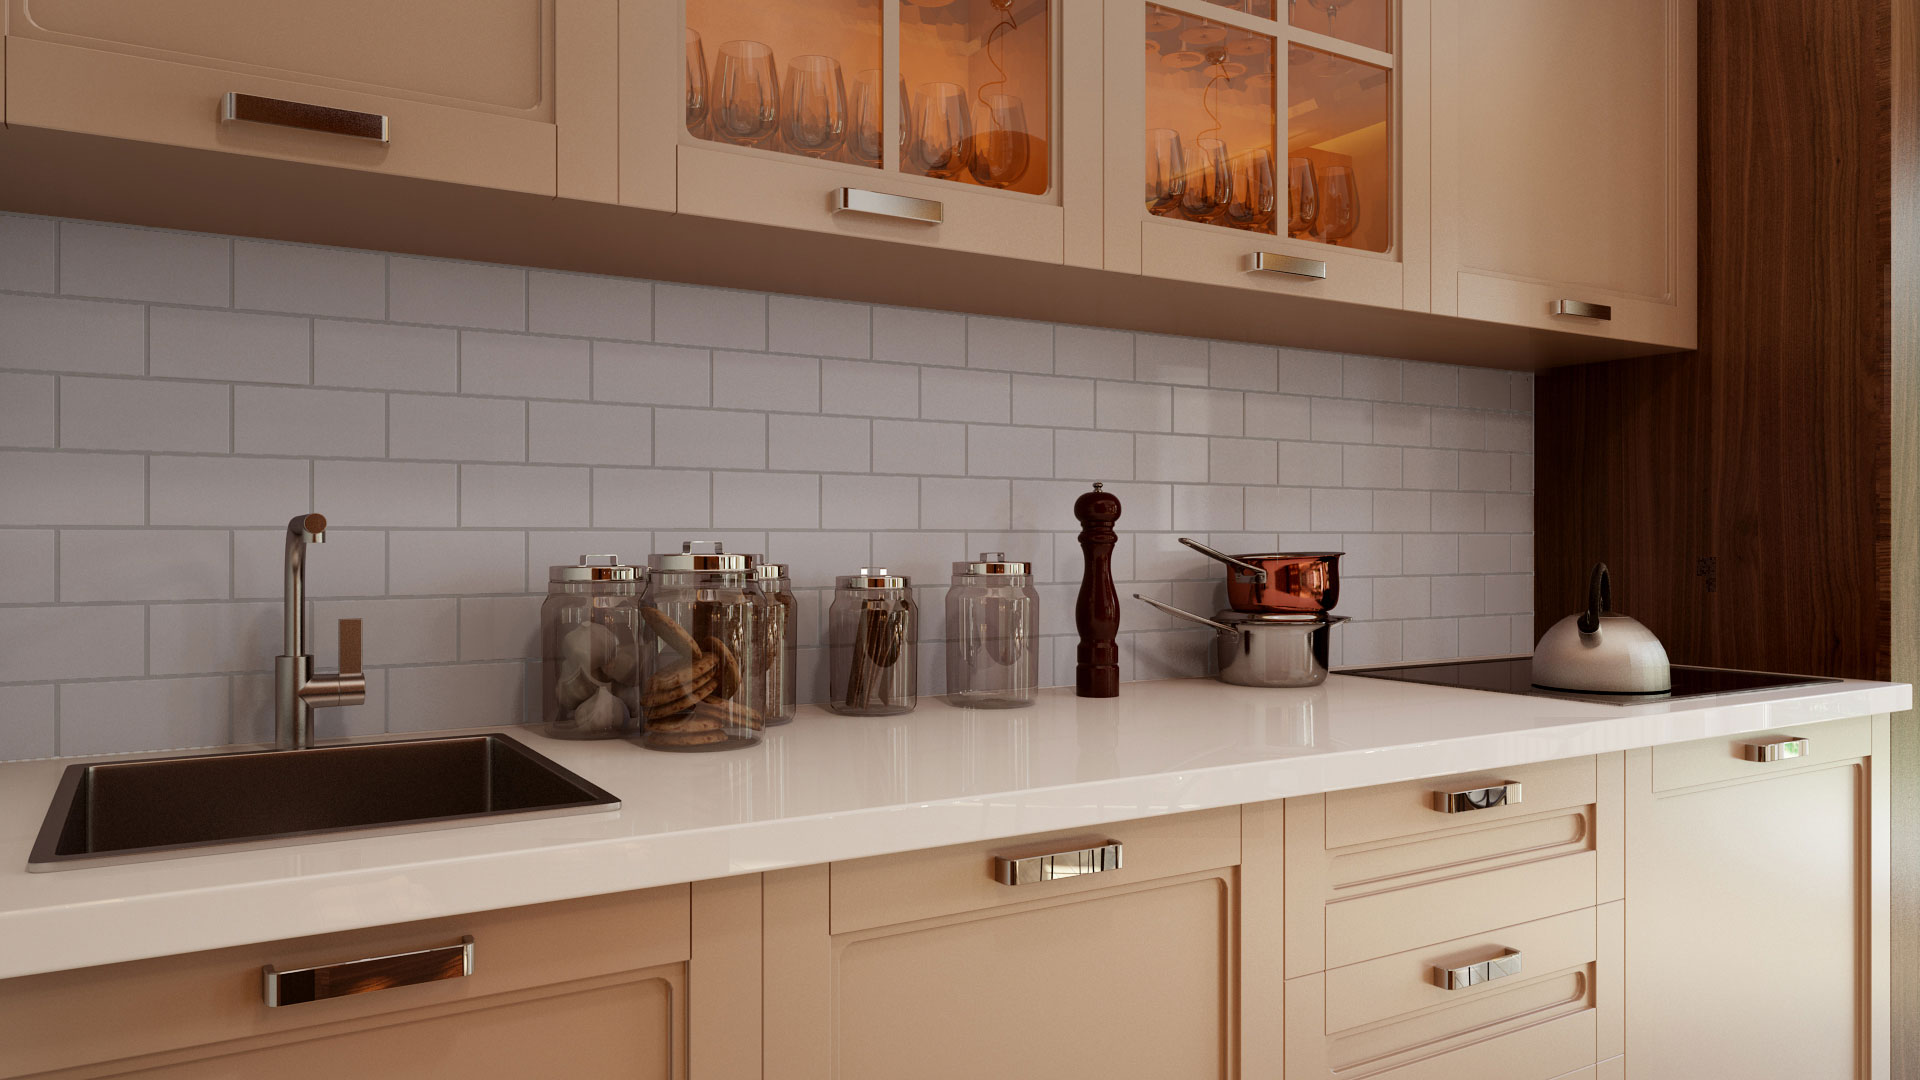 Photorealistic 3D Lifestyle Rendering for a White Backsplash